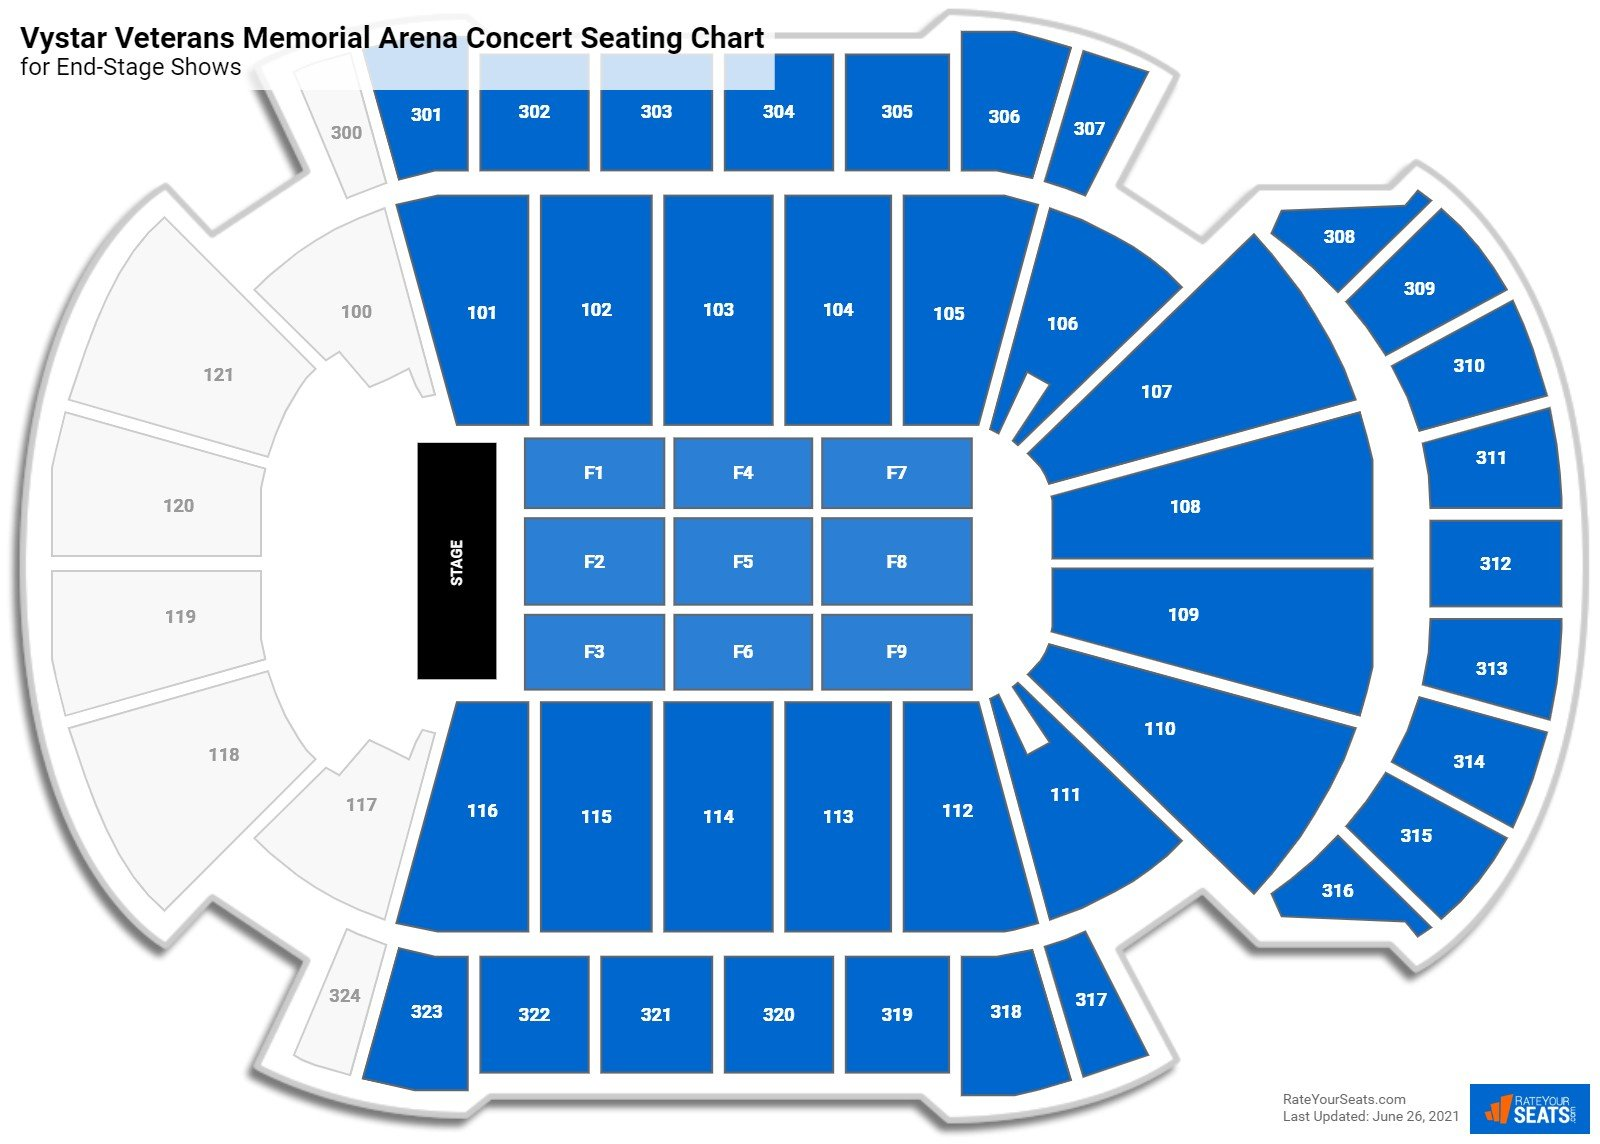 Vystar Veterans Memorial Arena Seating Chart for Concerts